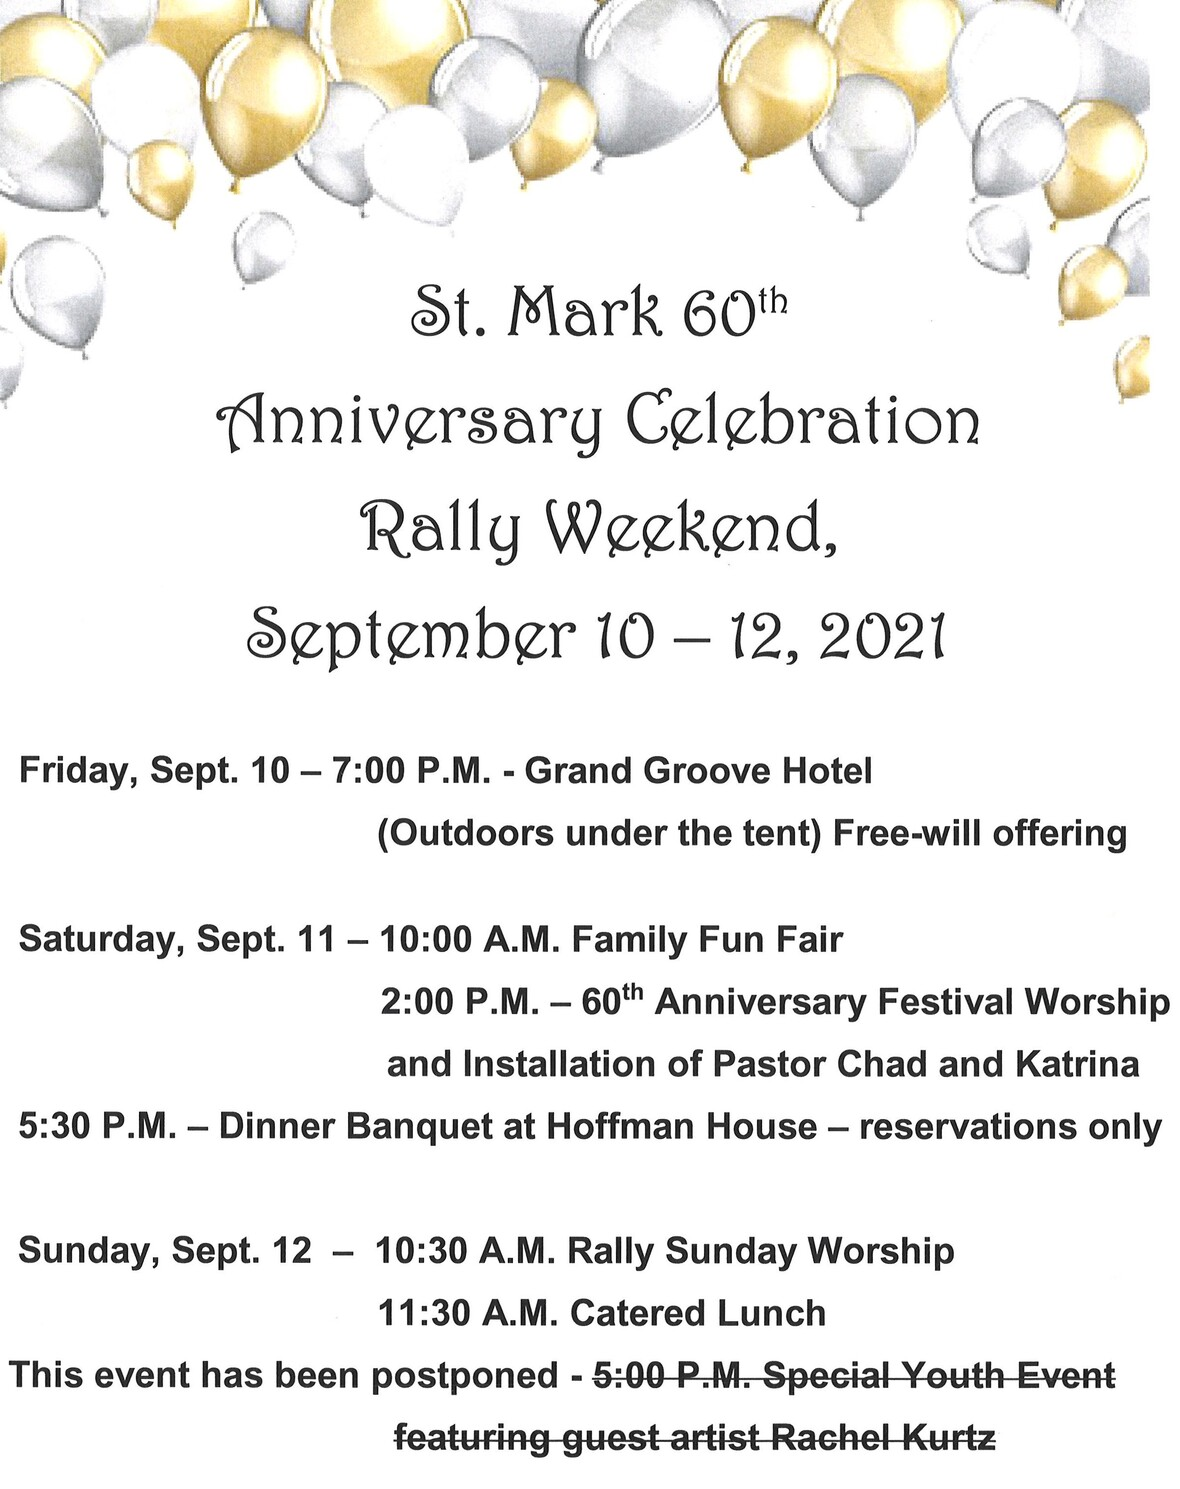 info for week of rally weekend